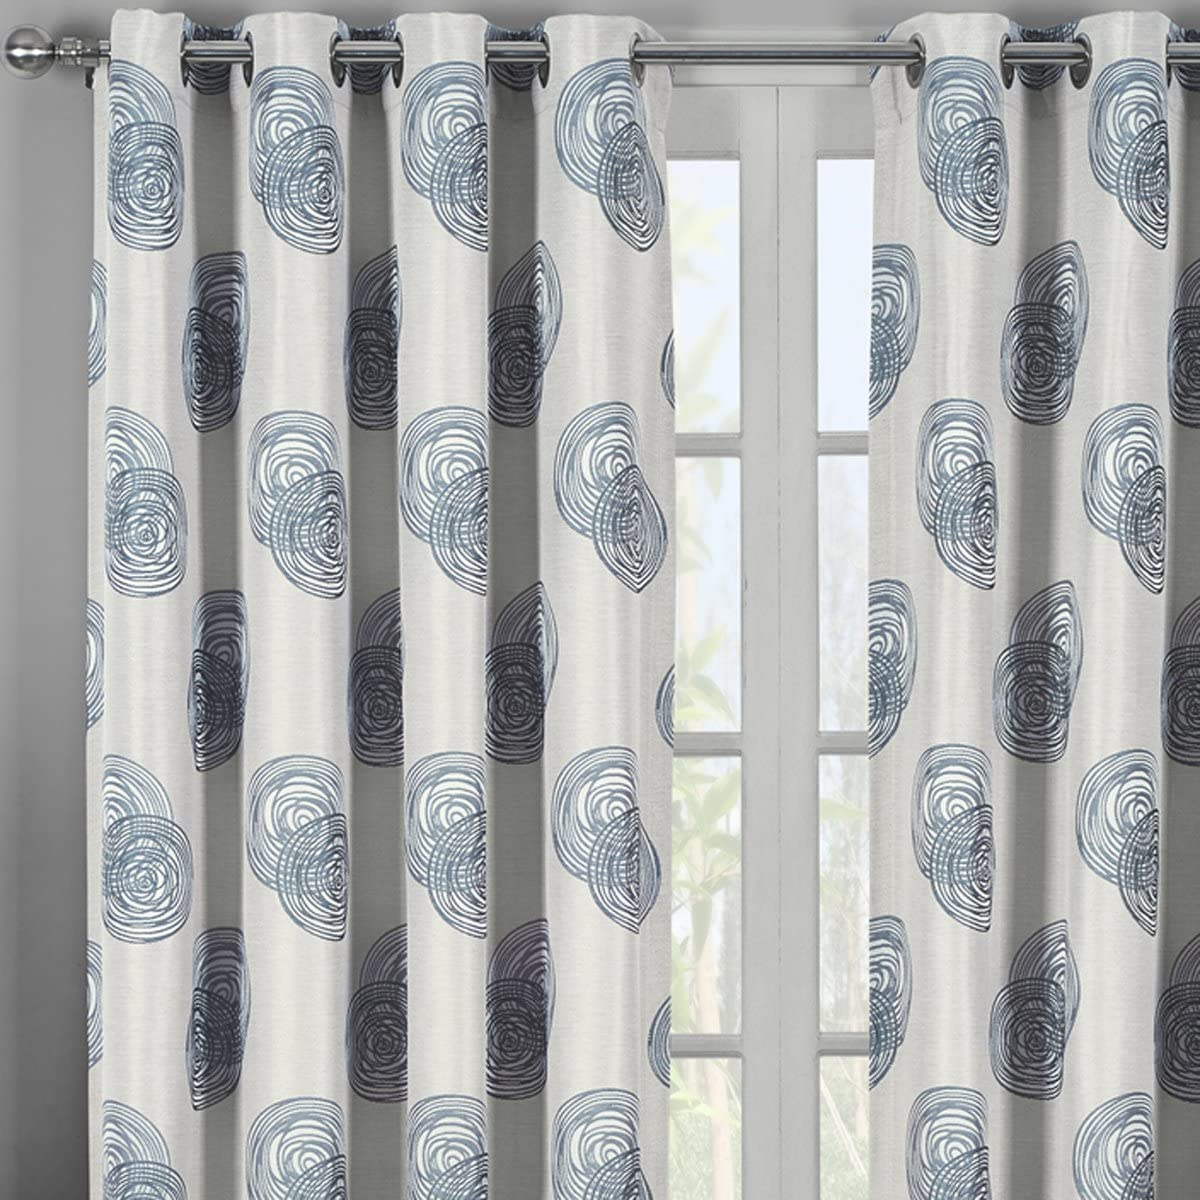 Set of 2 Panels 108 Wx120 L Lafayette Gray Jacquard Grommet Window Curtain Panels, 54-inch 120-Inch Each Panel. Package Contains Set of 2 Panels 120 inch Long